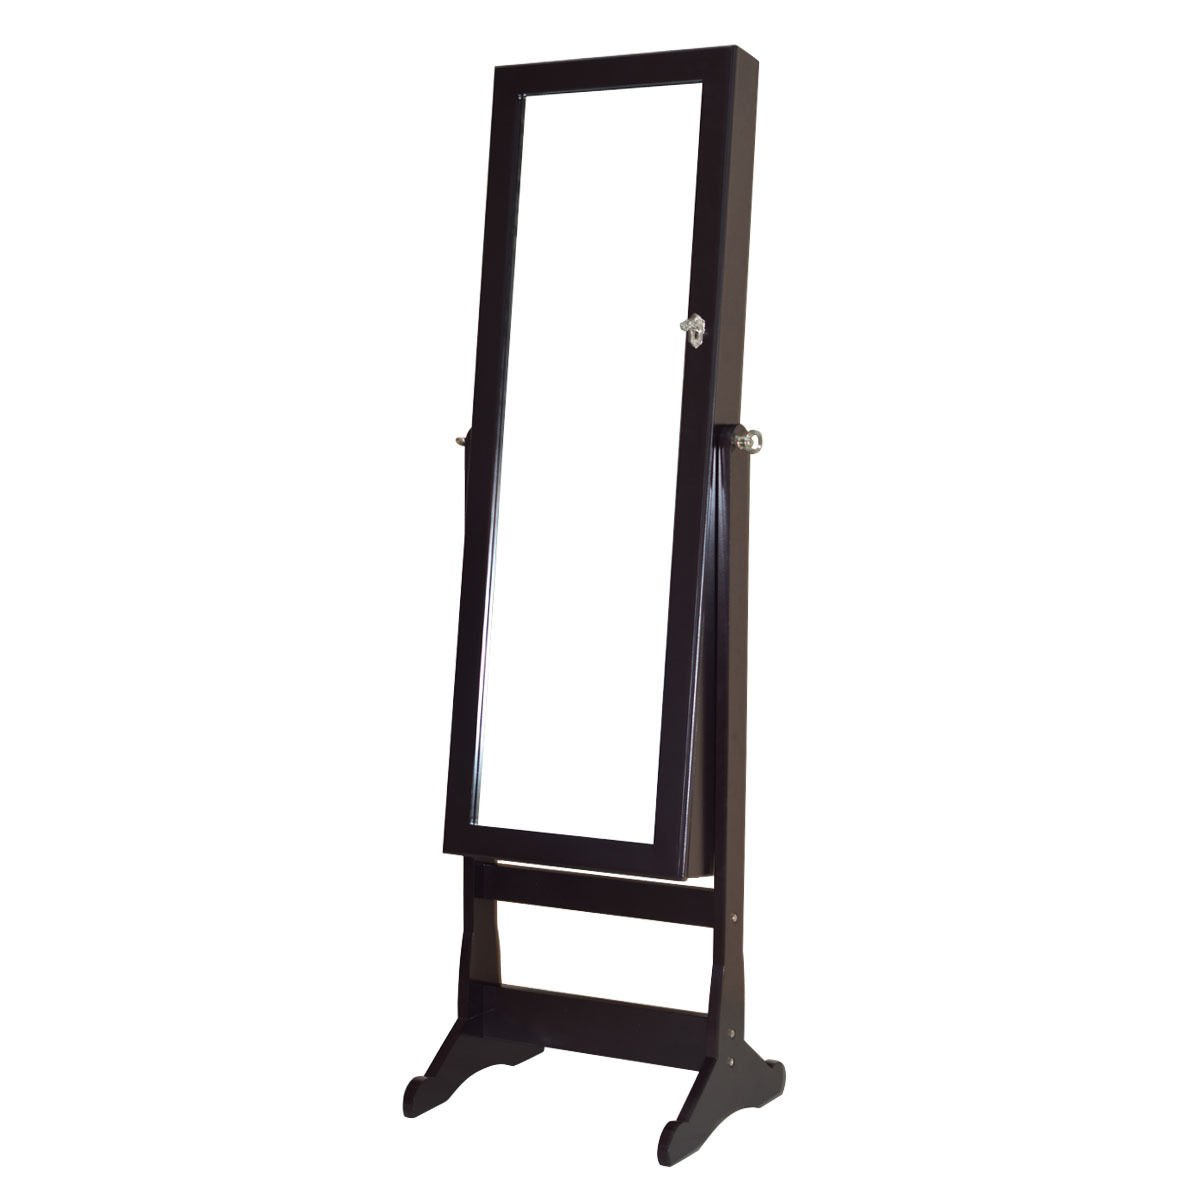 Full Length Mirror Jewelry Cabinet Armoire Velvet-Lined Interior Organizer Storage w/ LED Lights Battery by FDInspiration (Image #2)